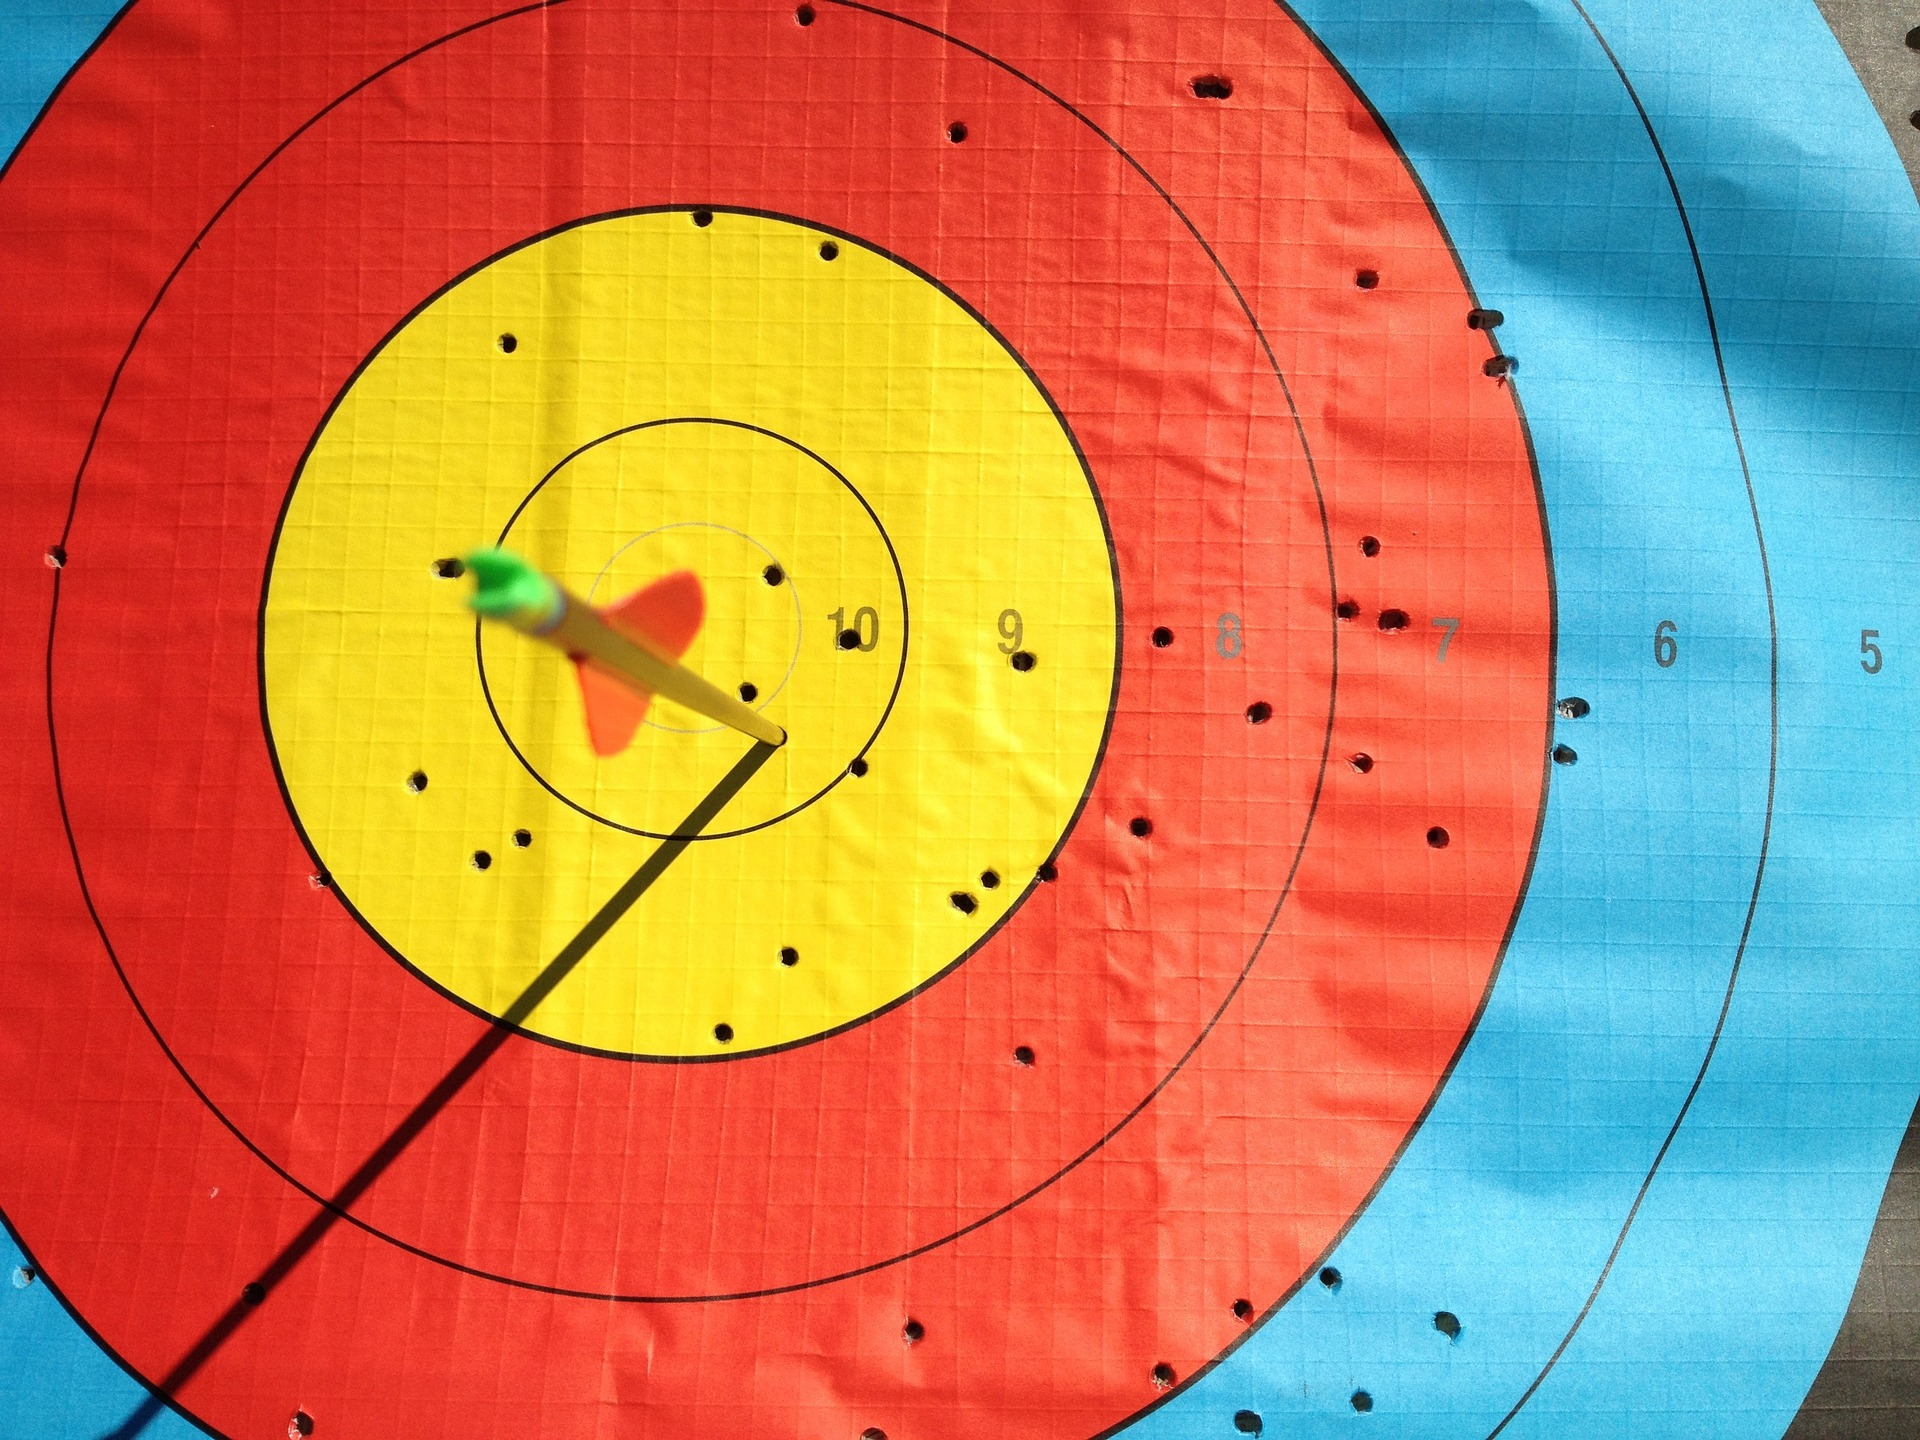 A close up picture of an archery target